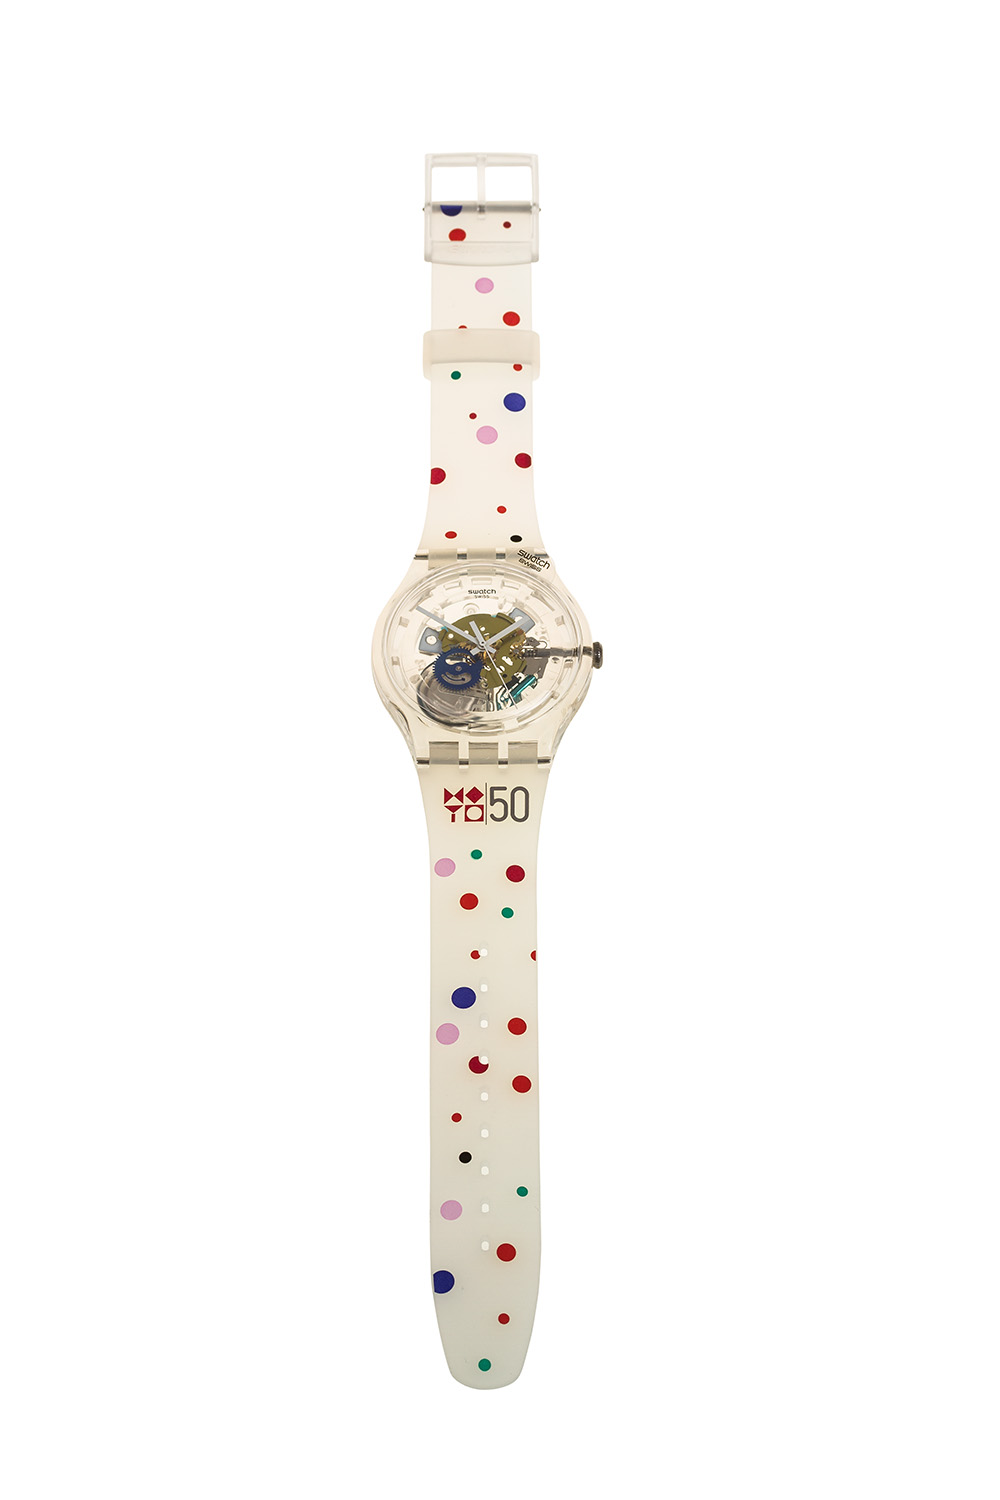 Israel Museum Swatch – Limited Edition